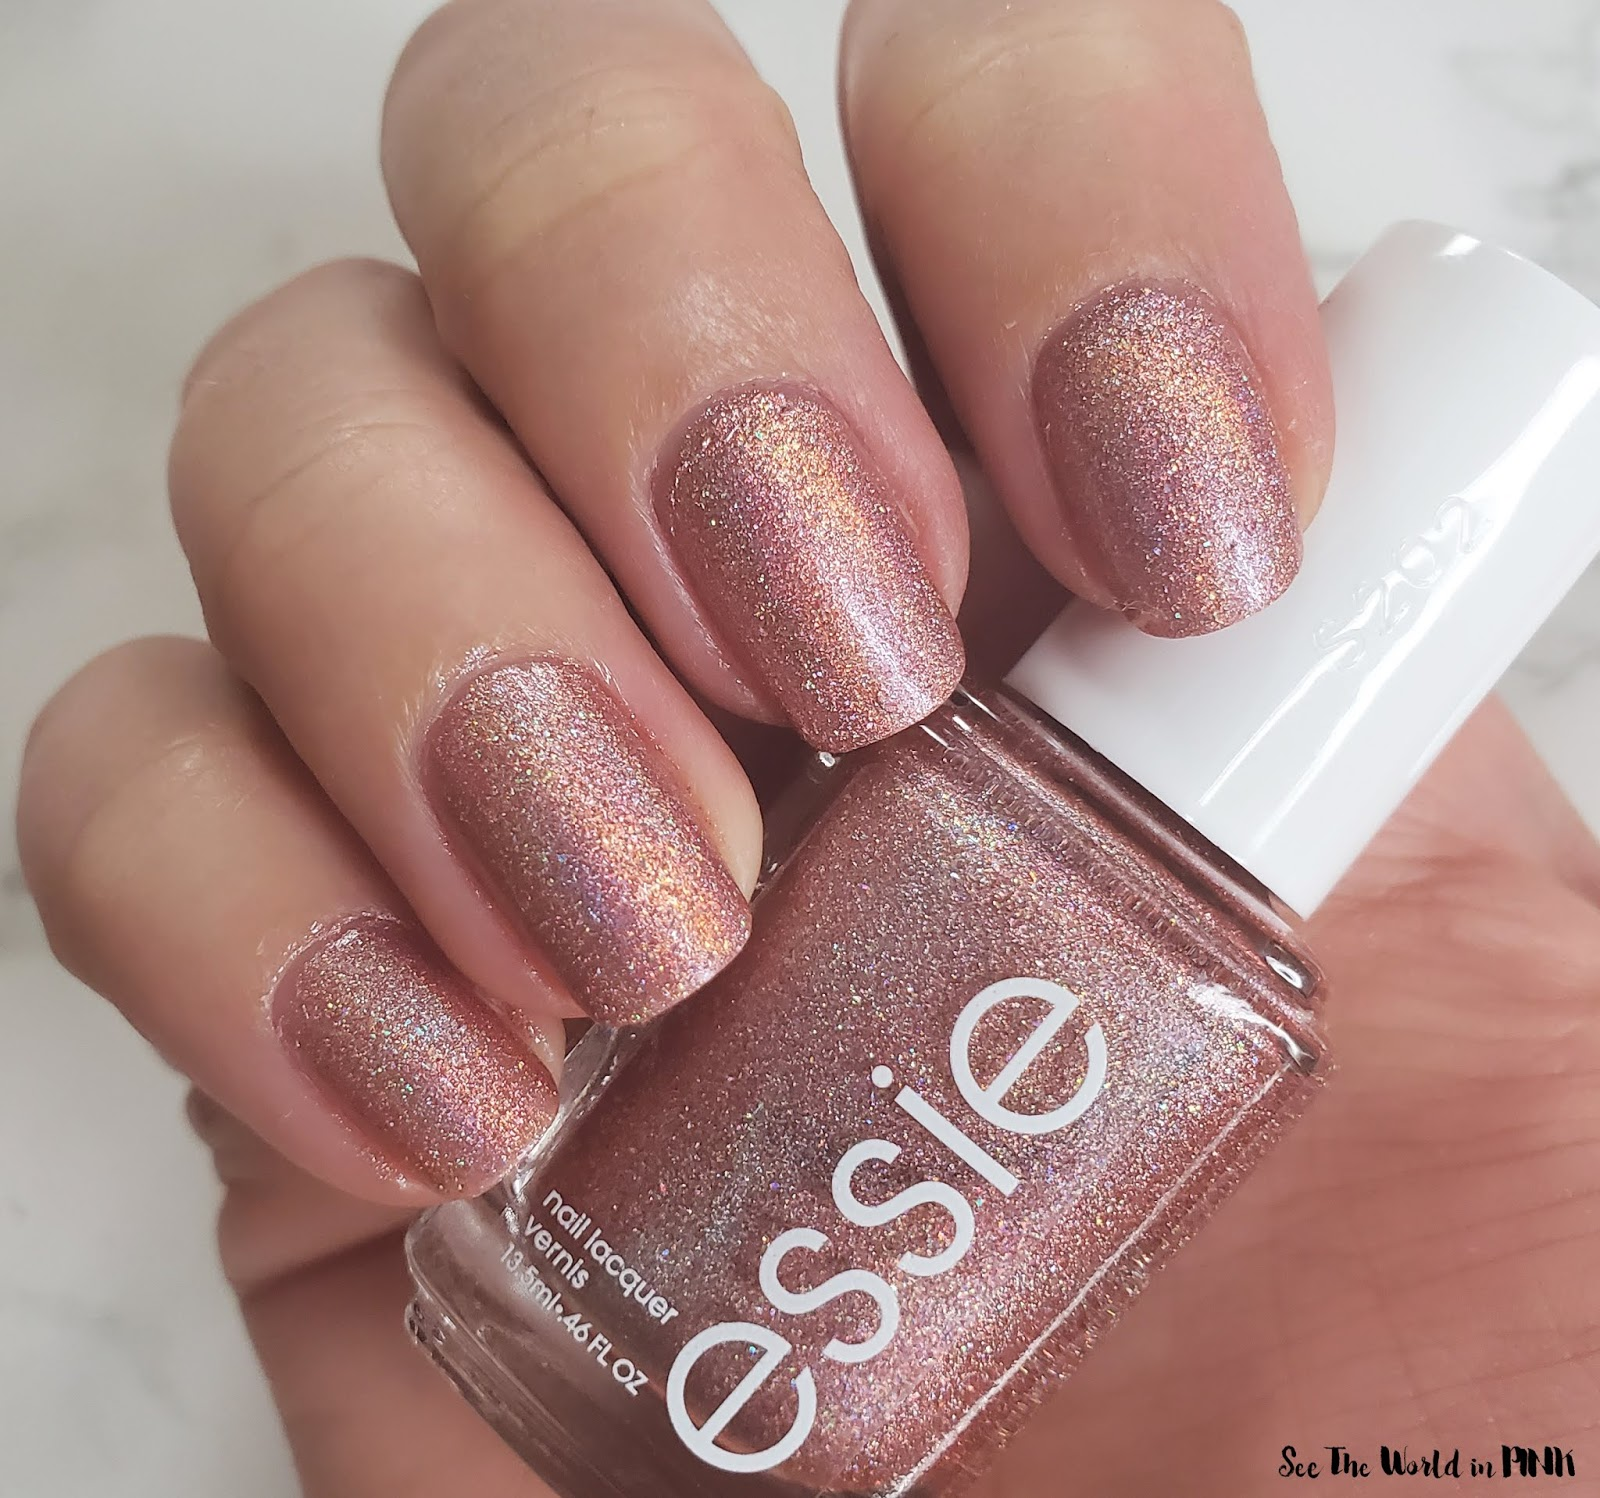 Manicure Monday - Fall Stamped Nails and Essie Gorge-ous Geodes